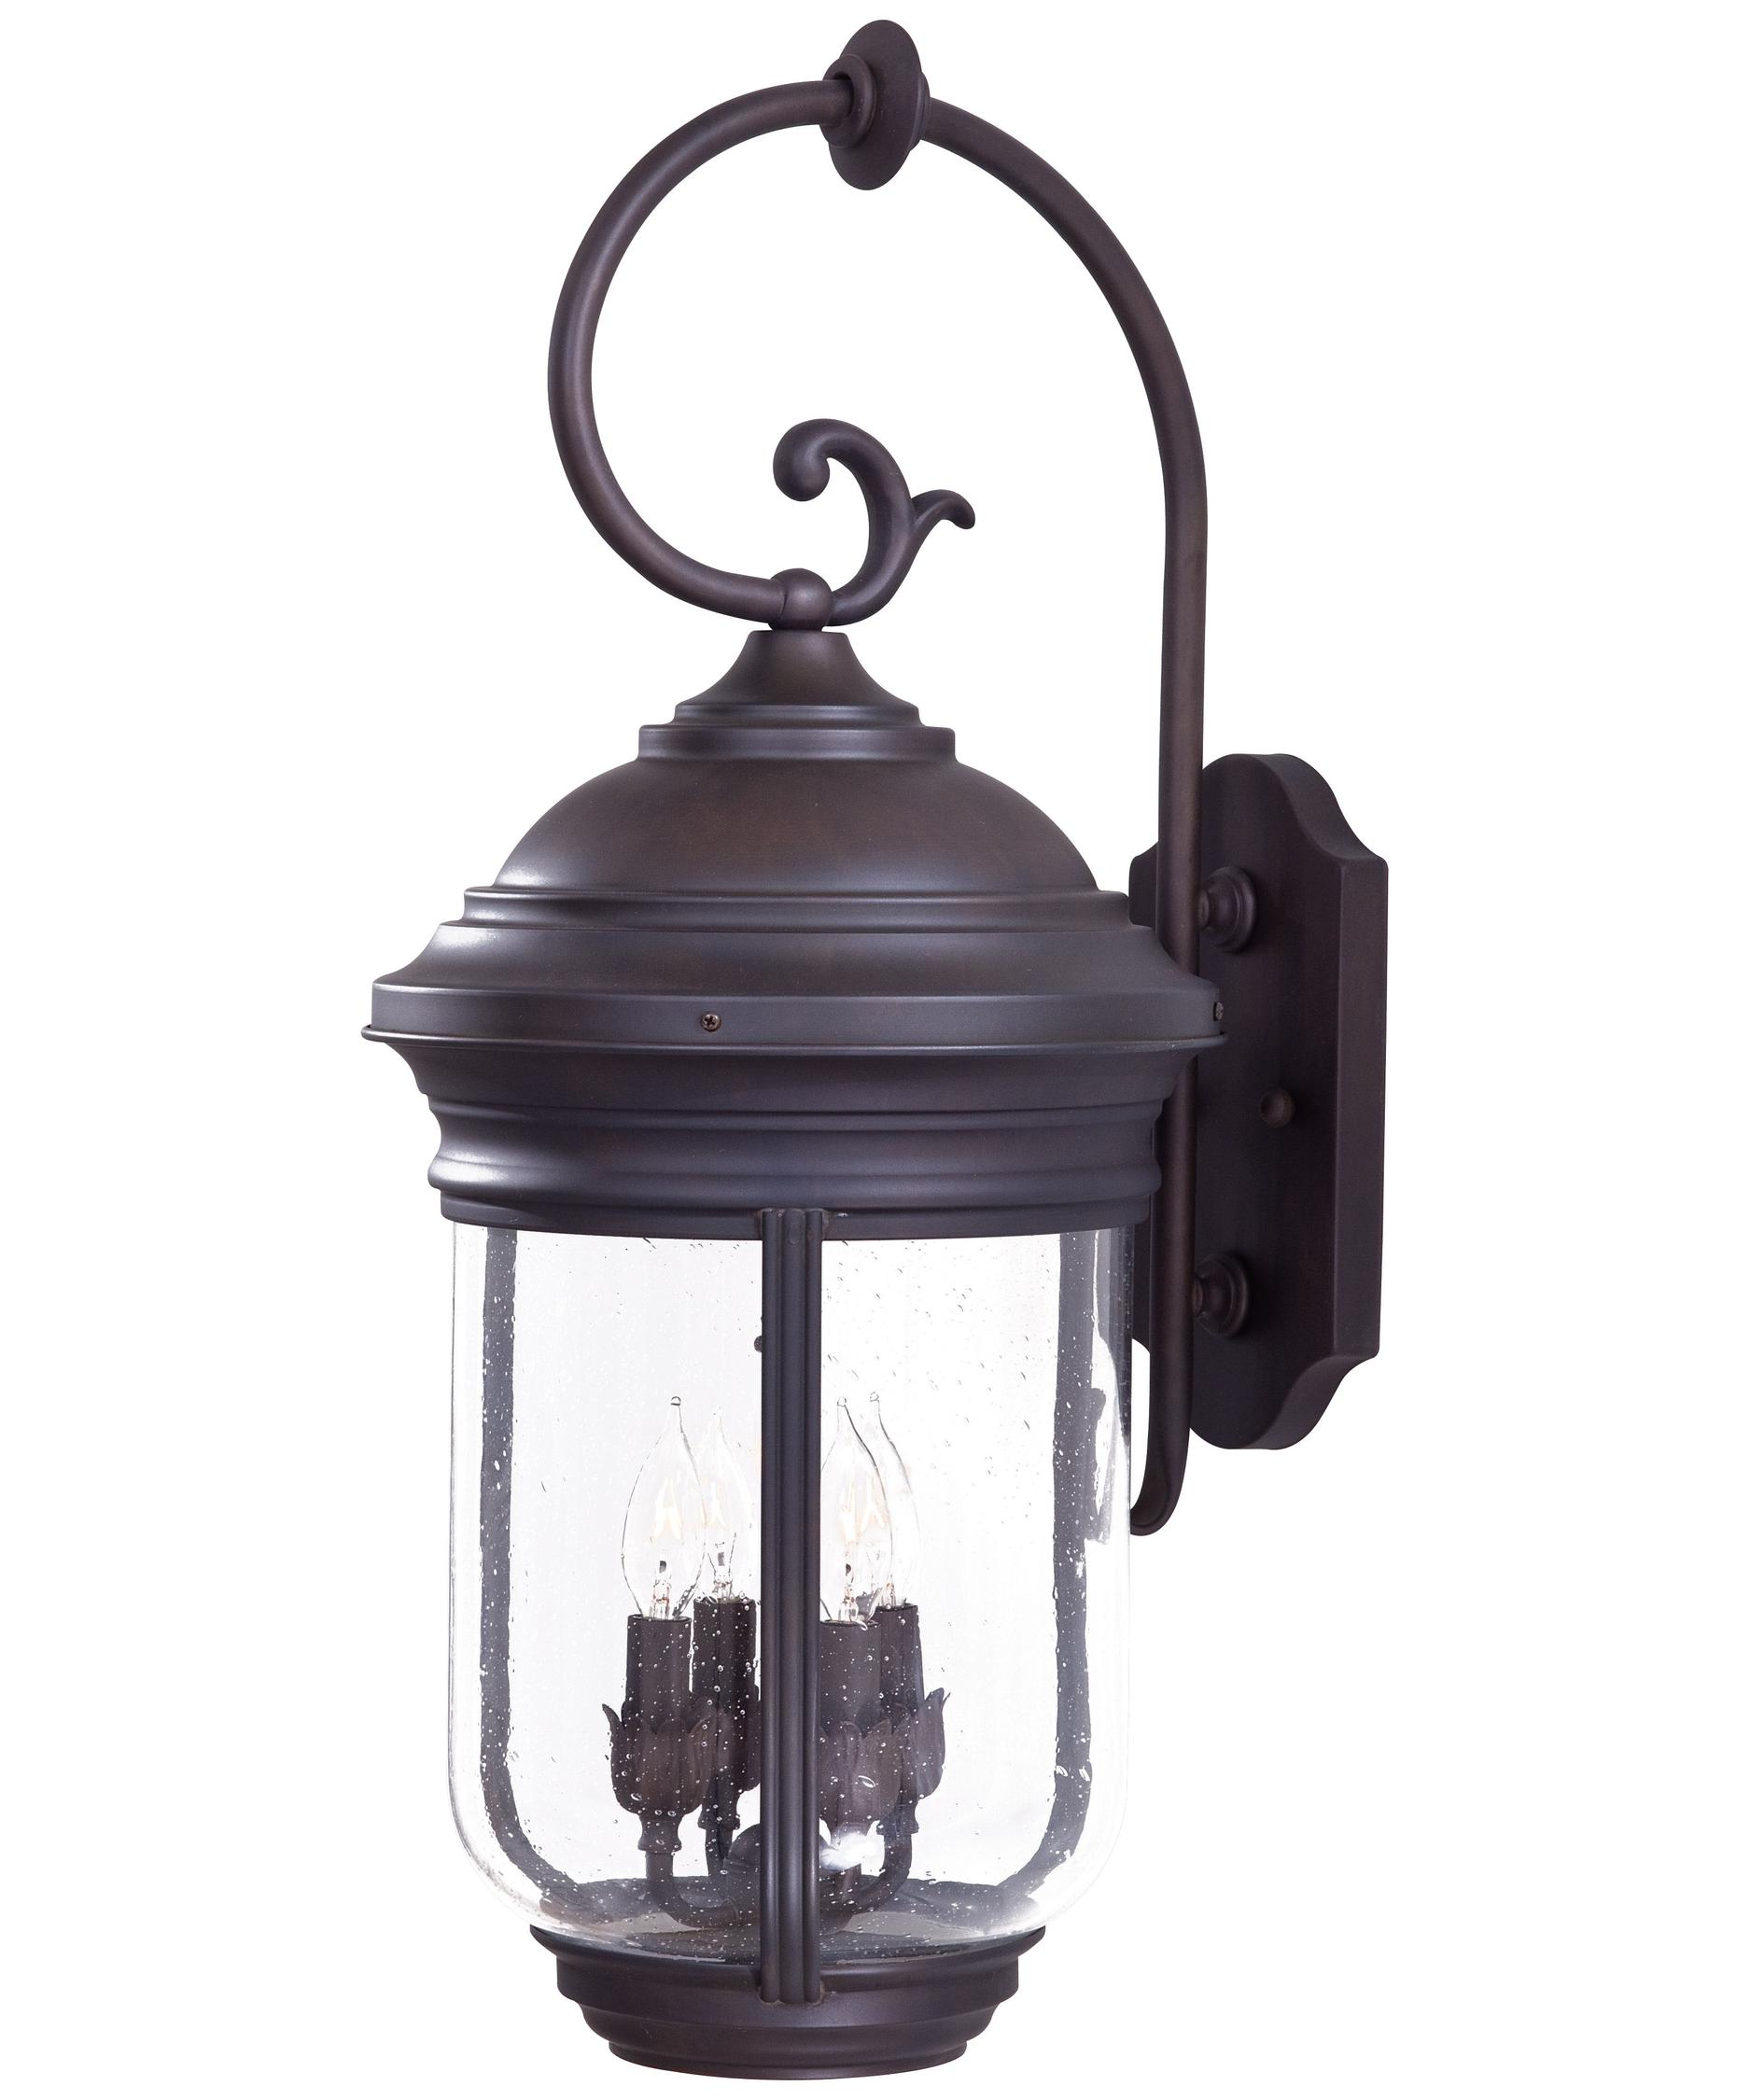 Minka lavery outdoor lights best lighting for the outdoor 1 aloadofball Choice Image